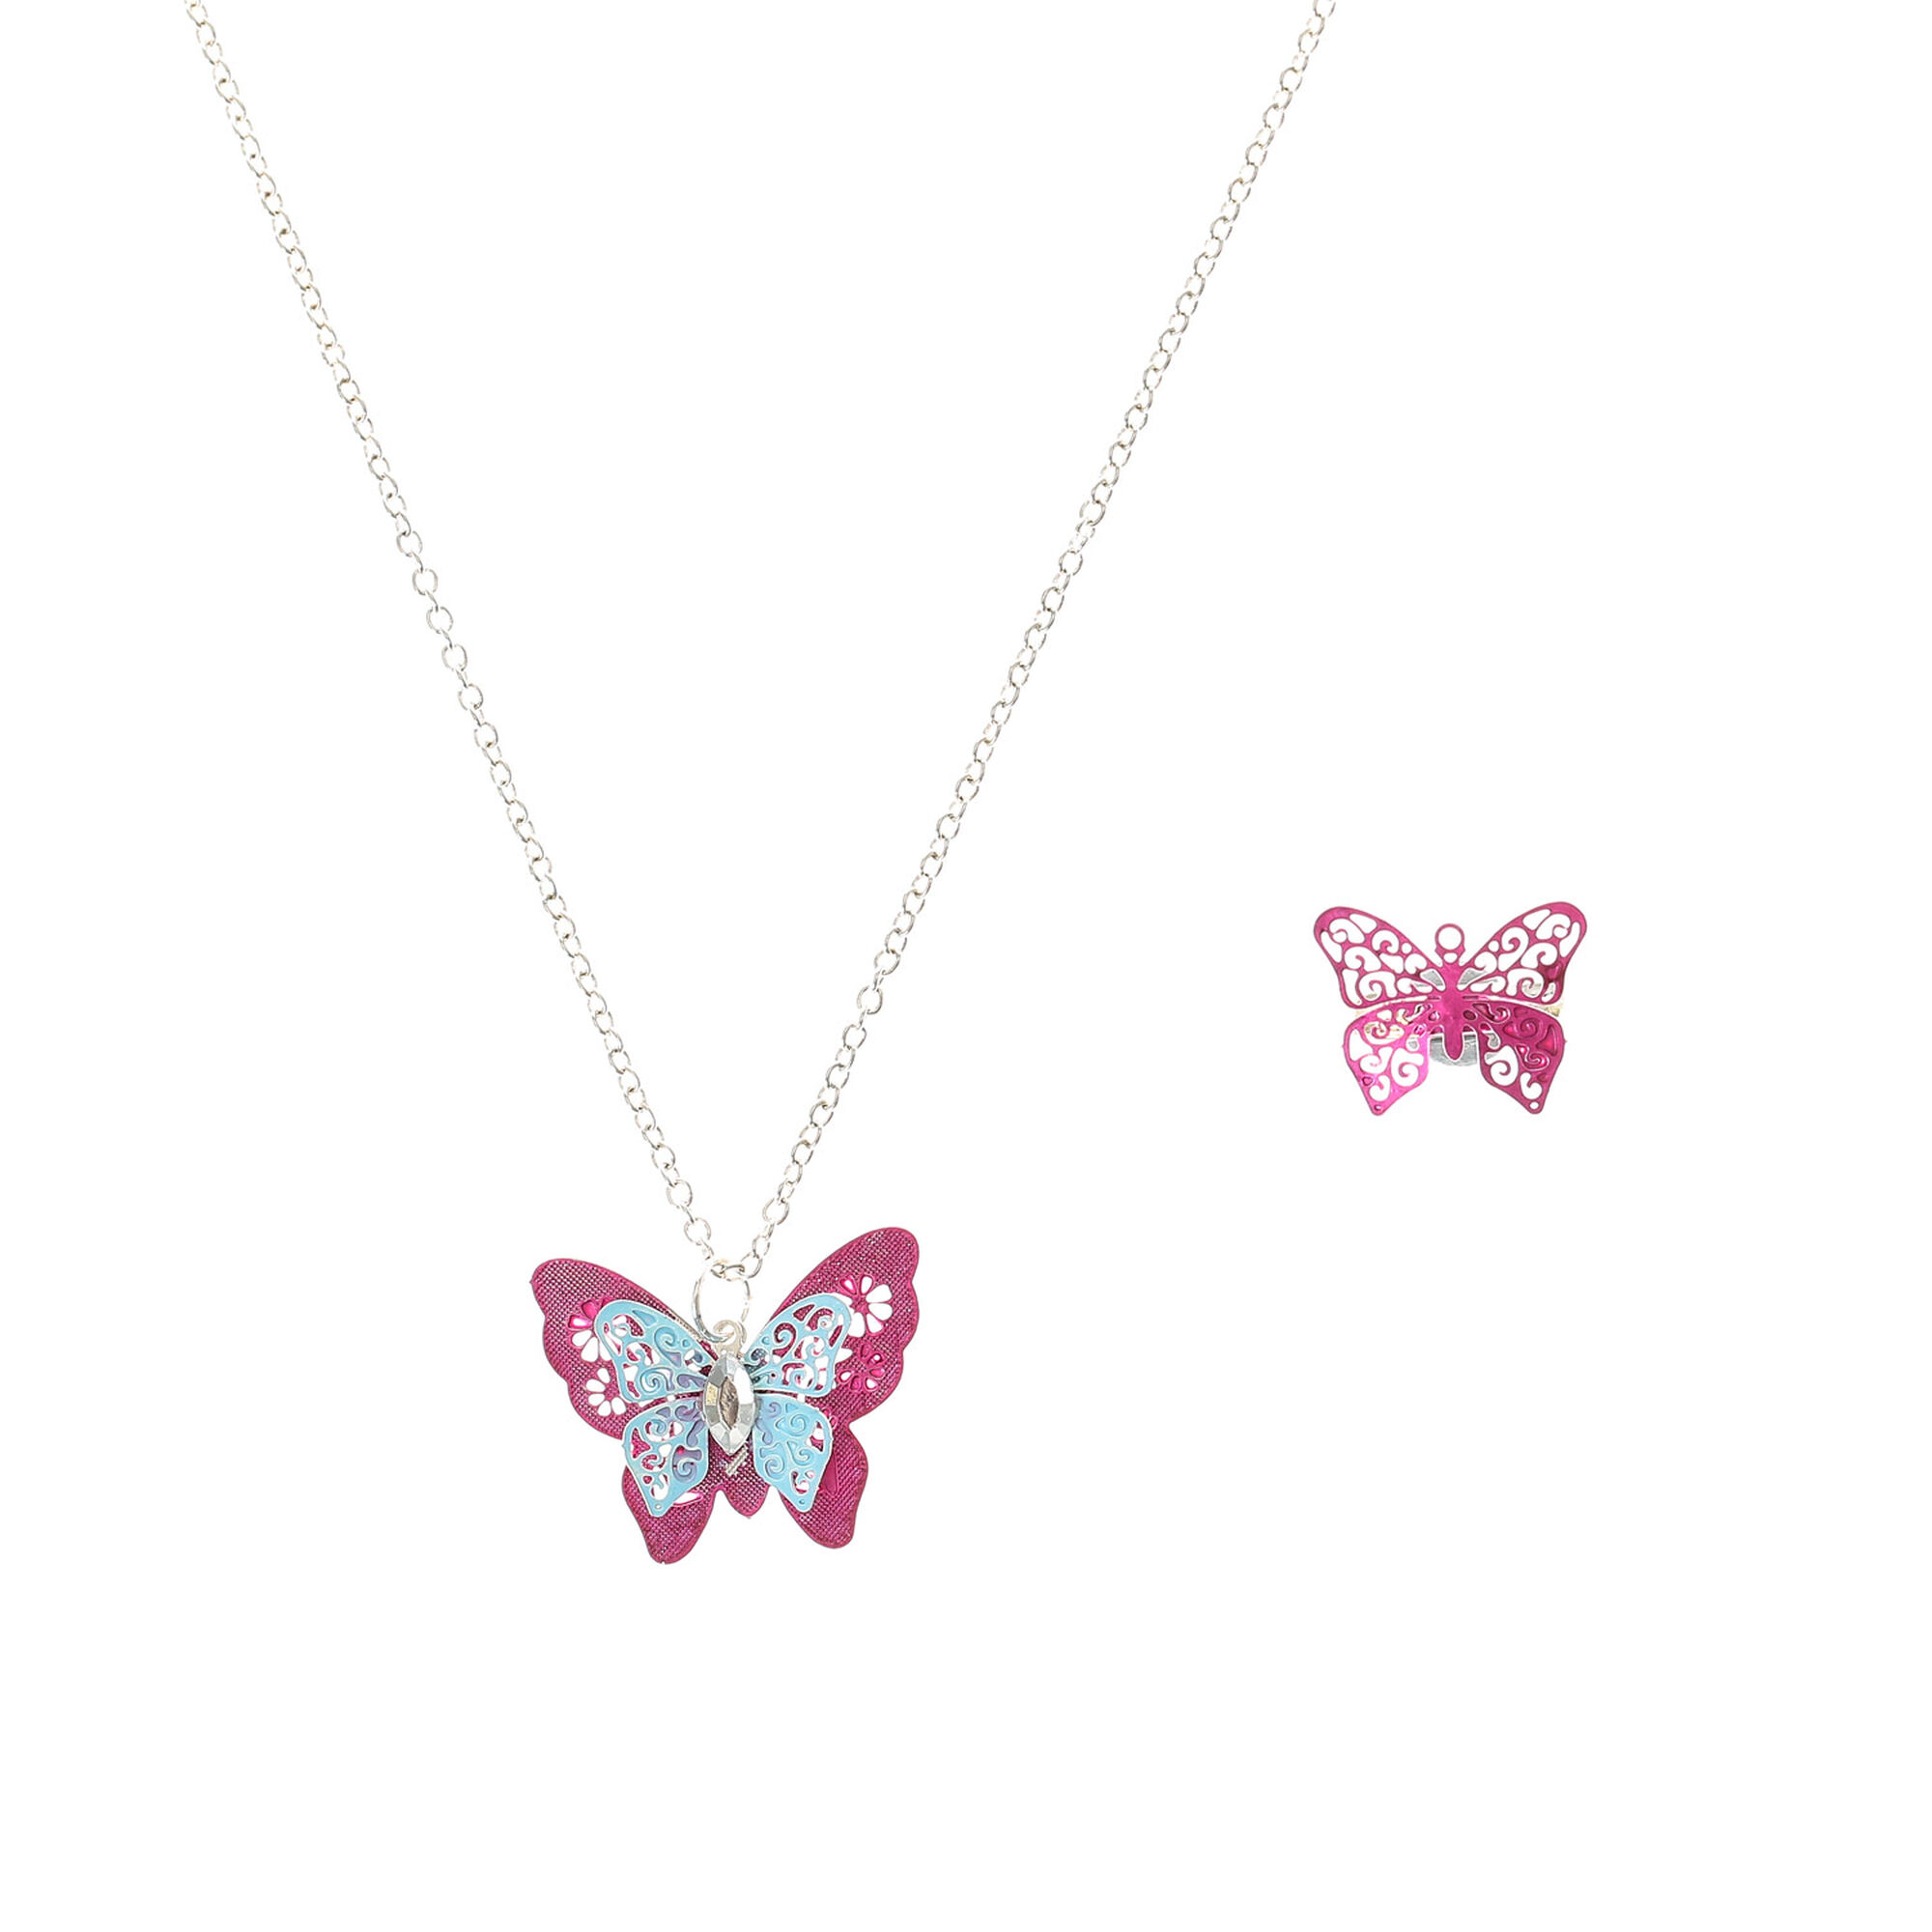 Kids Erfly Ring Necklace Set